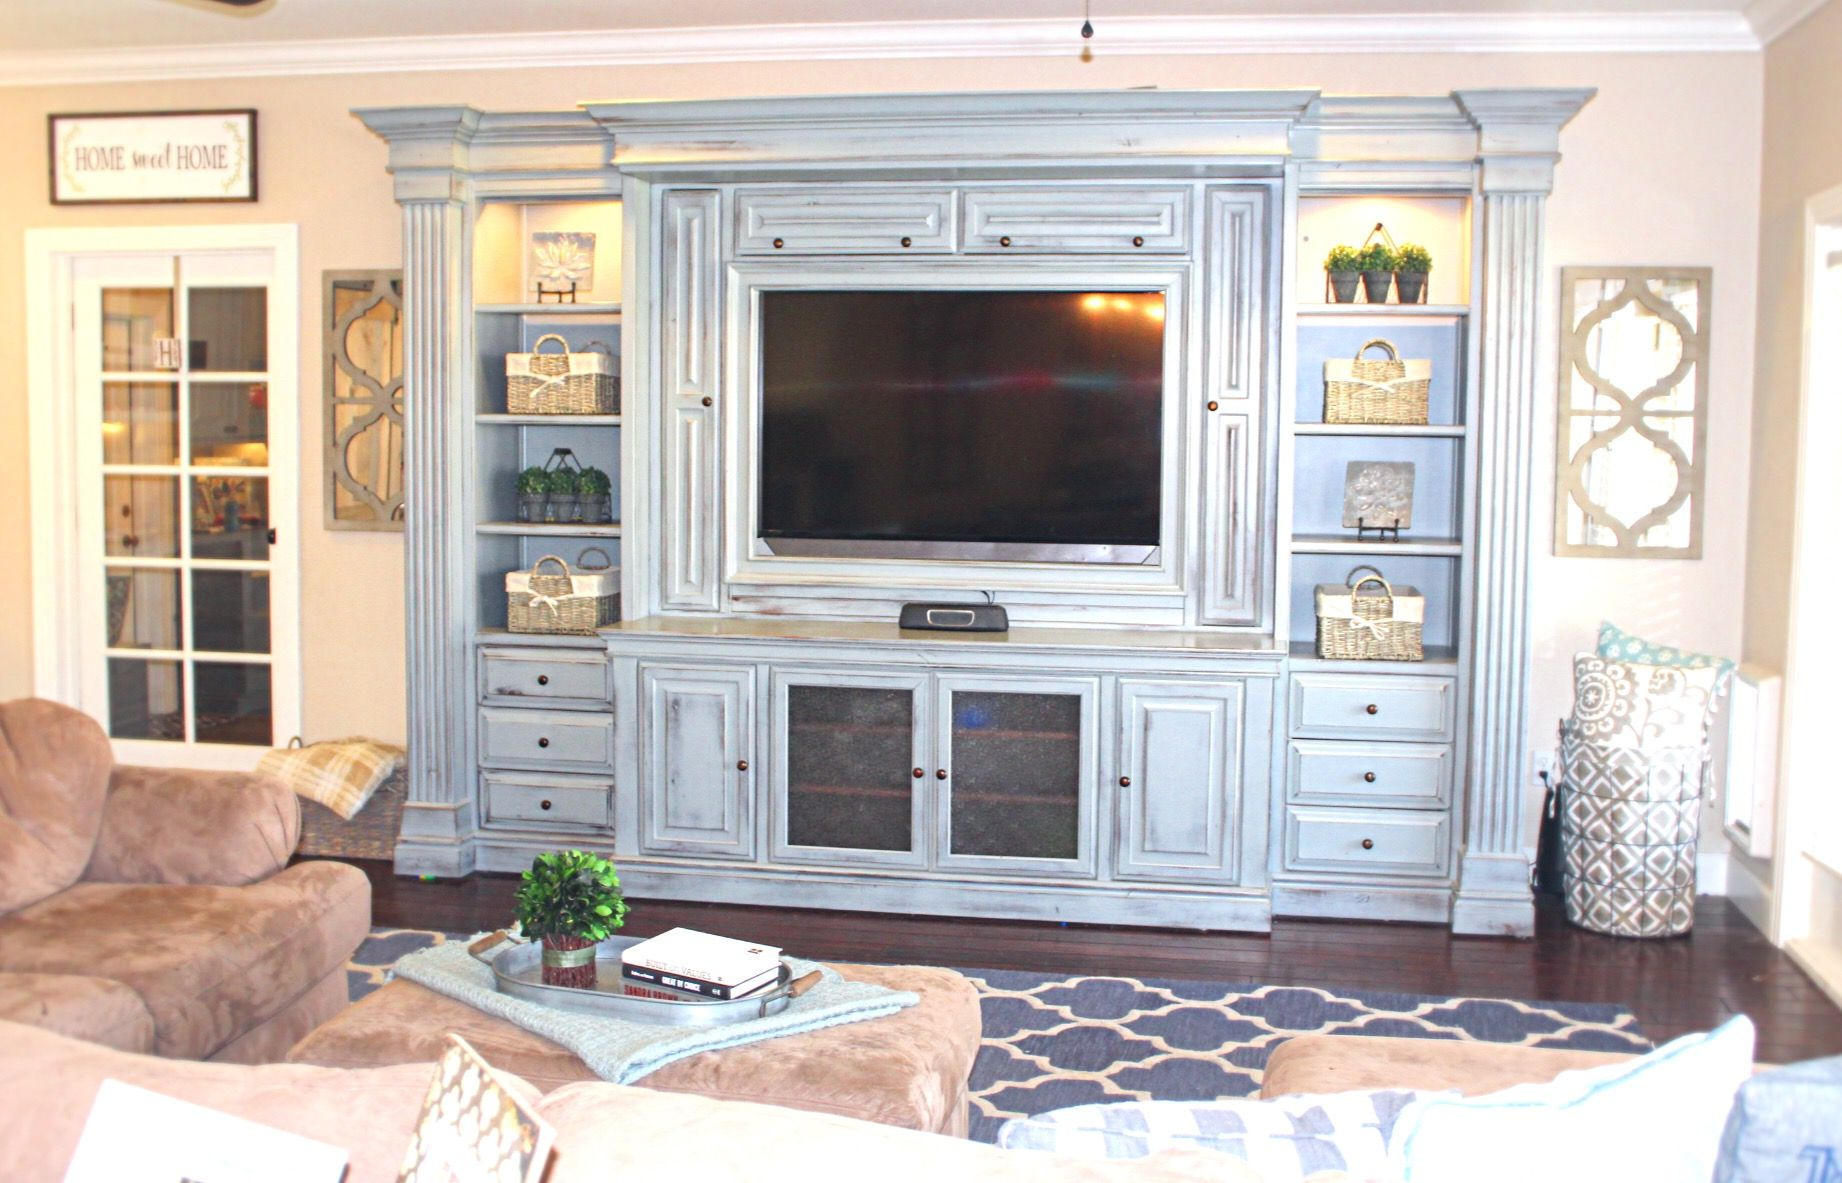 Entertainment center from thedecormama on instagram